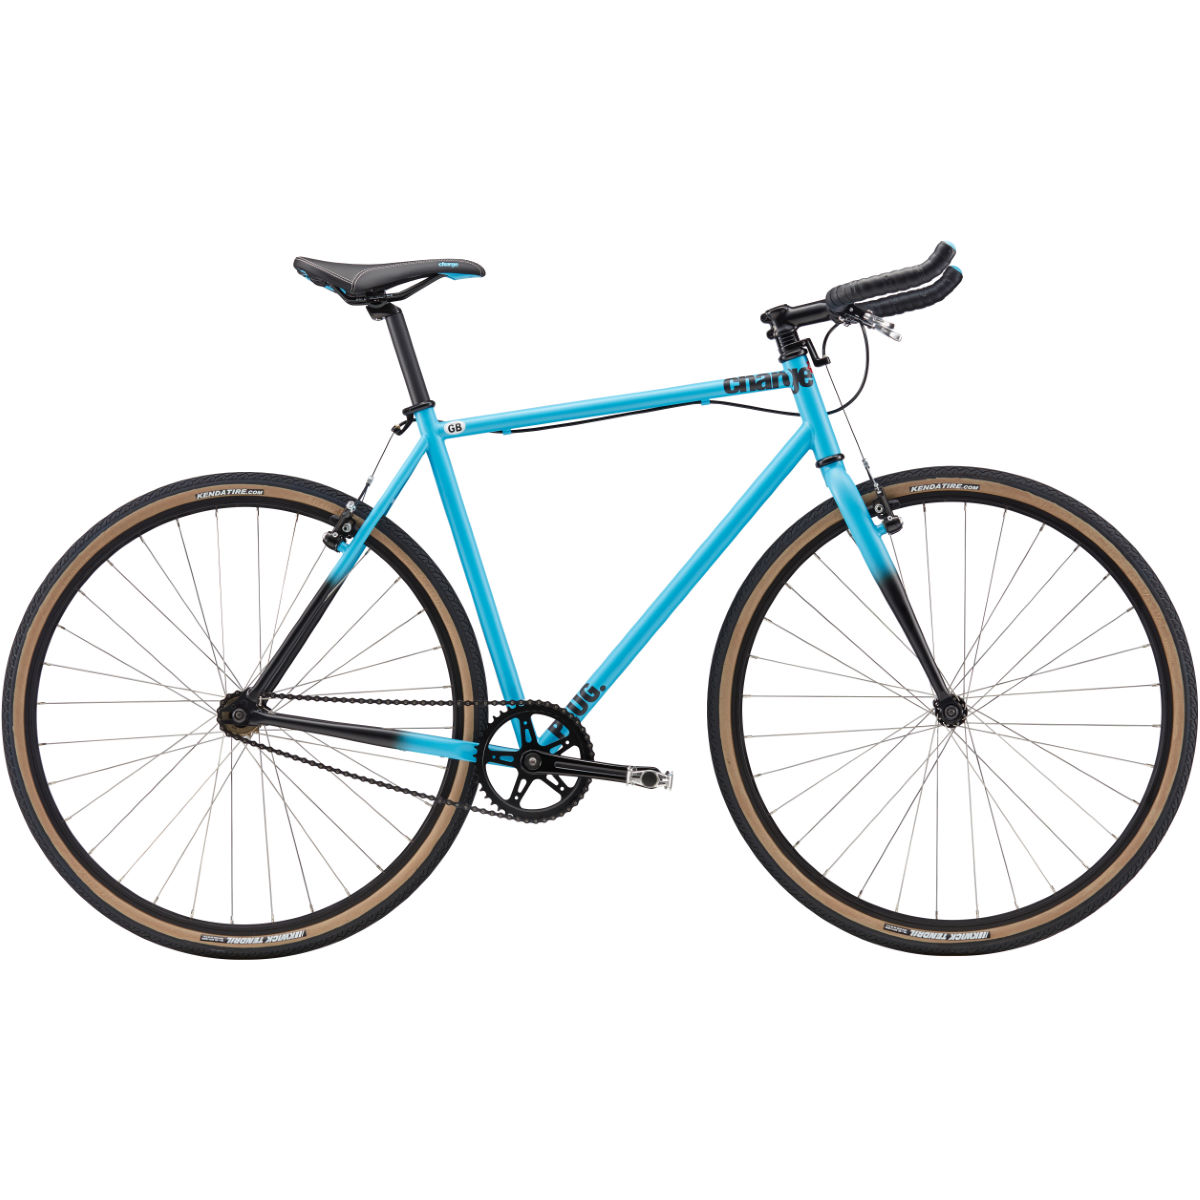 Vélo single speed Charge Plug 0 (2017) - MD Stock Bike Bleu